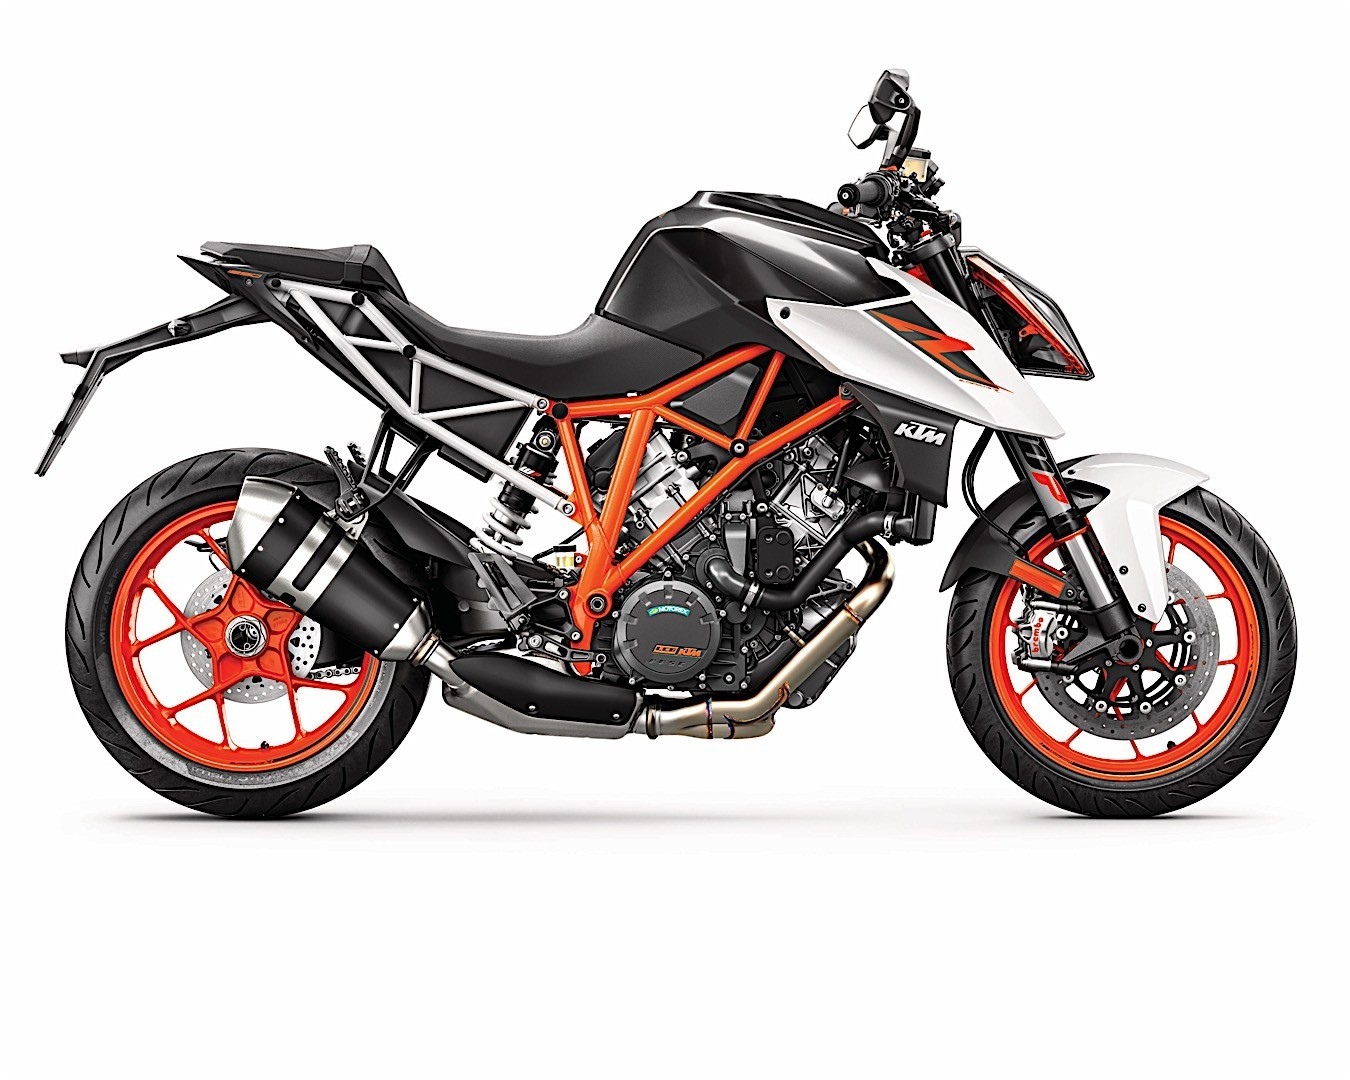 2017 ktm 1290 super duke r the beast reloaded. Black Bedroom Furniture Sets. Home Design Ideas